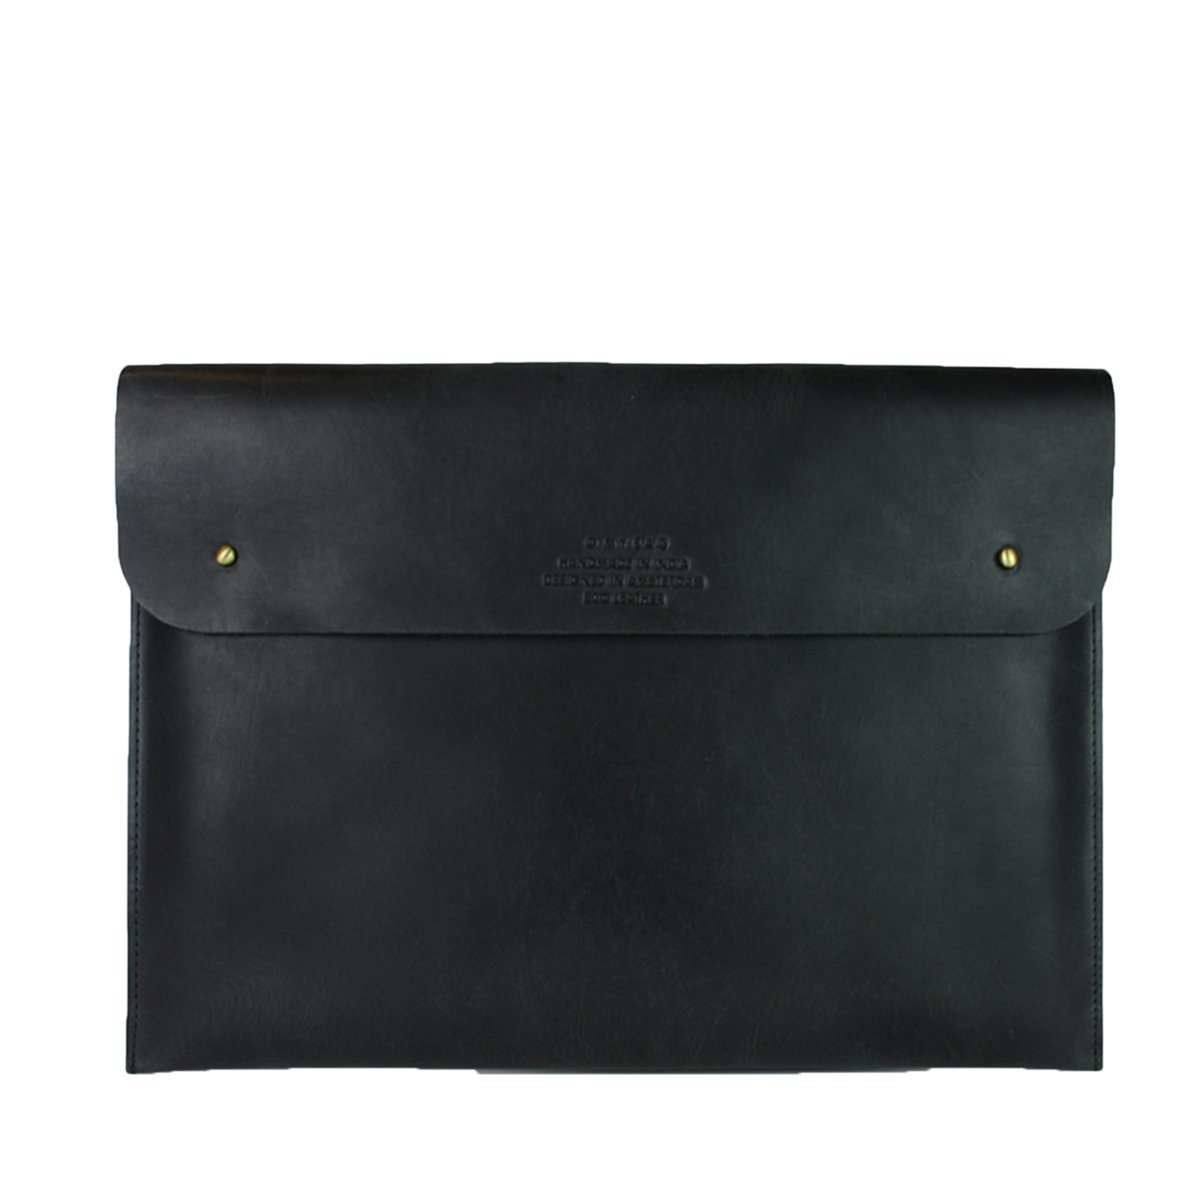 Laptop sleeve black